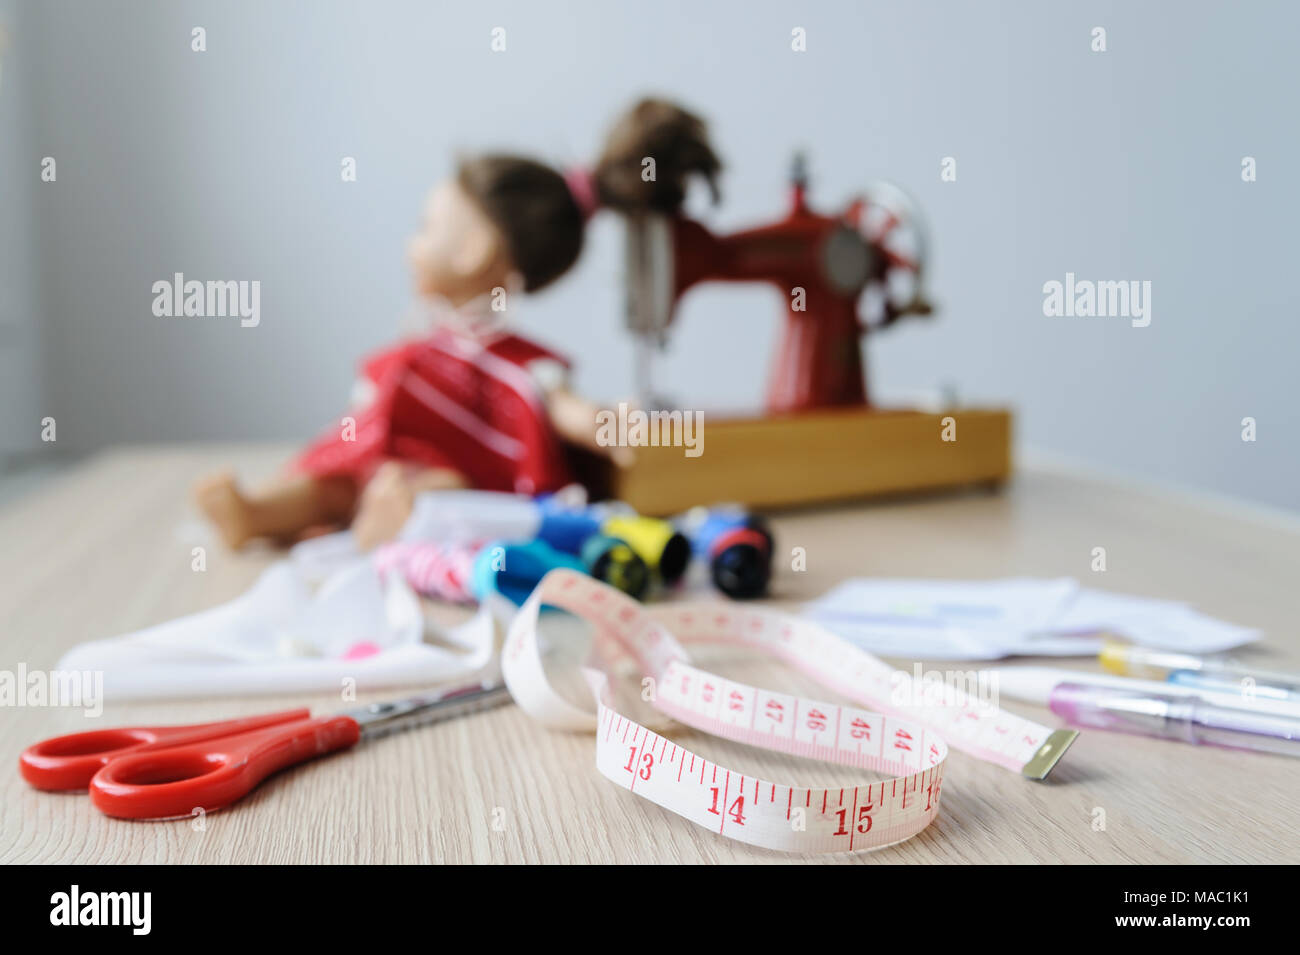 Workplace of seamstresses. On the desktop there is a measuring tape, scissors, pens, pencils, spools, fabric, a sewing machine and a doll. - Stock Image